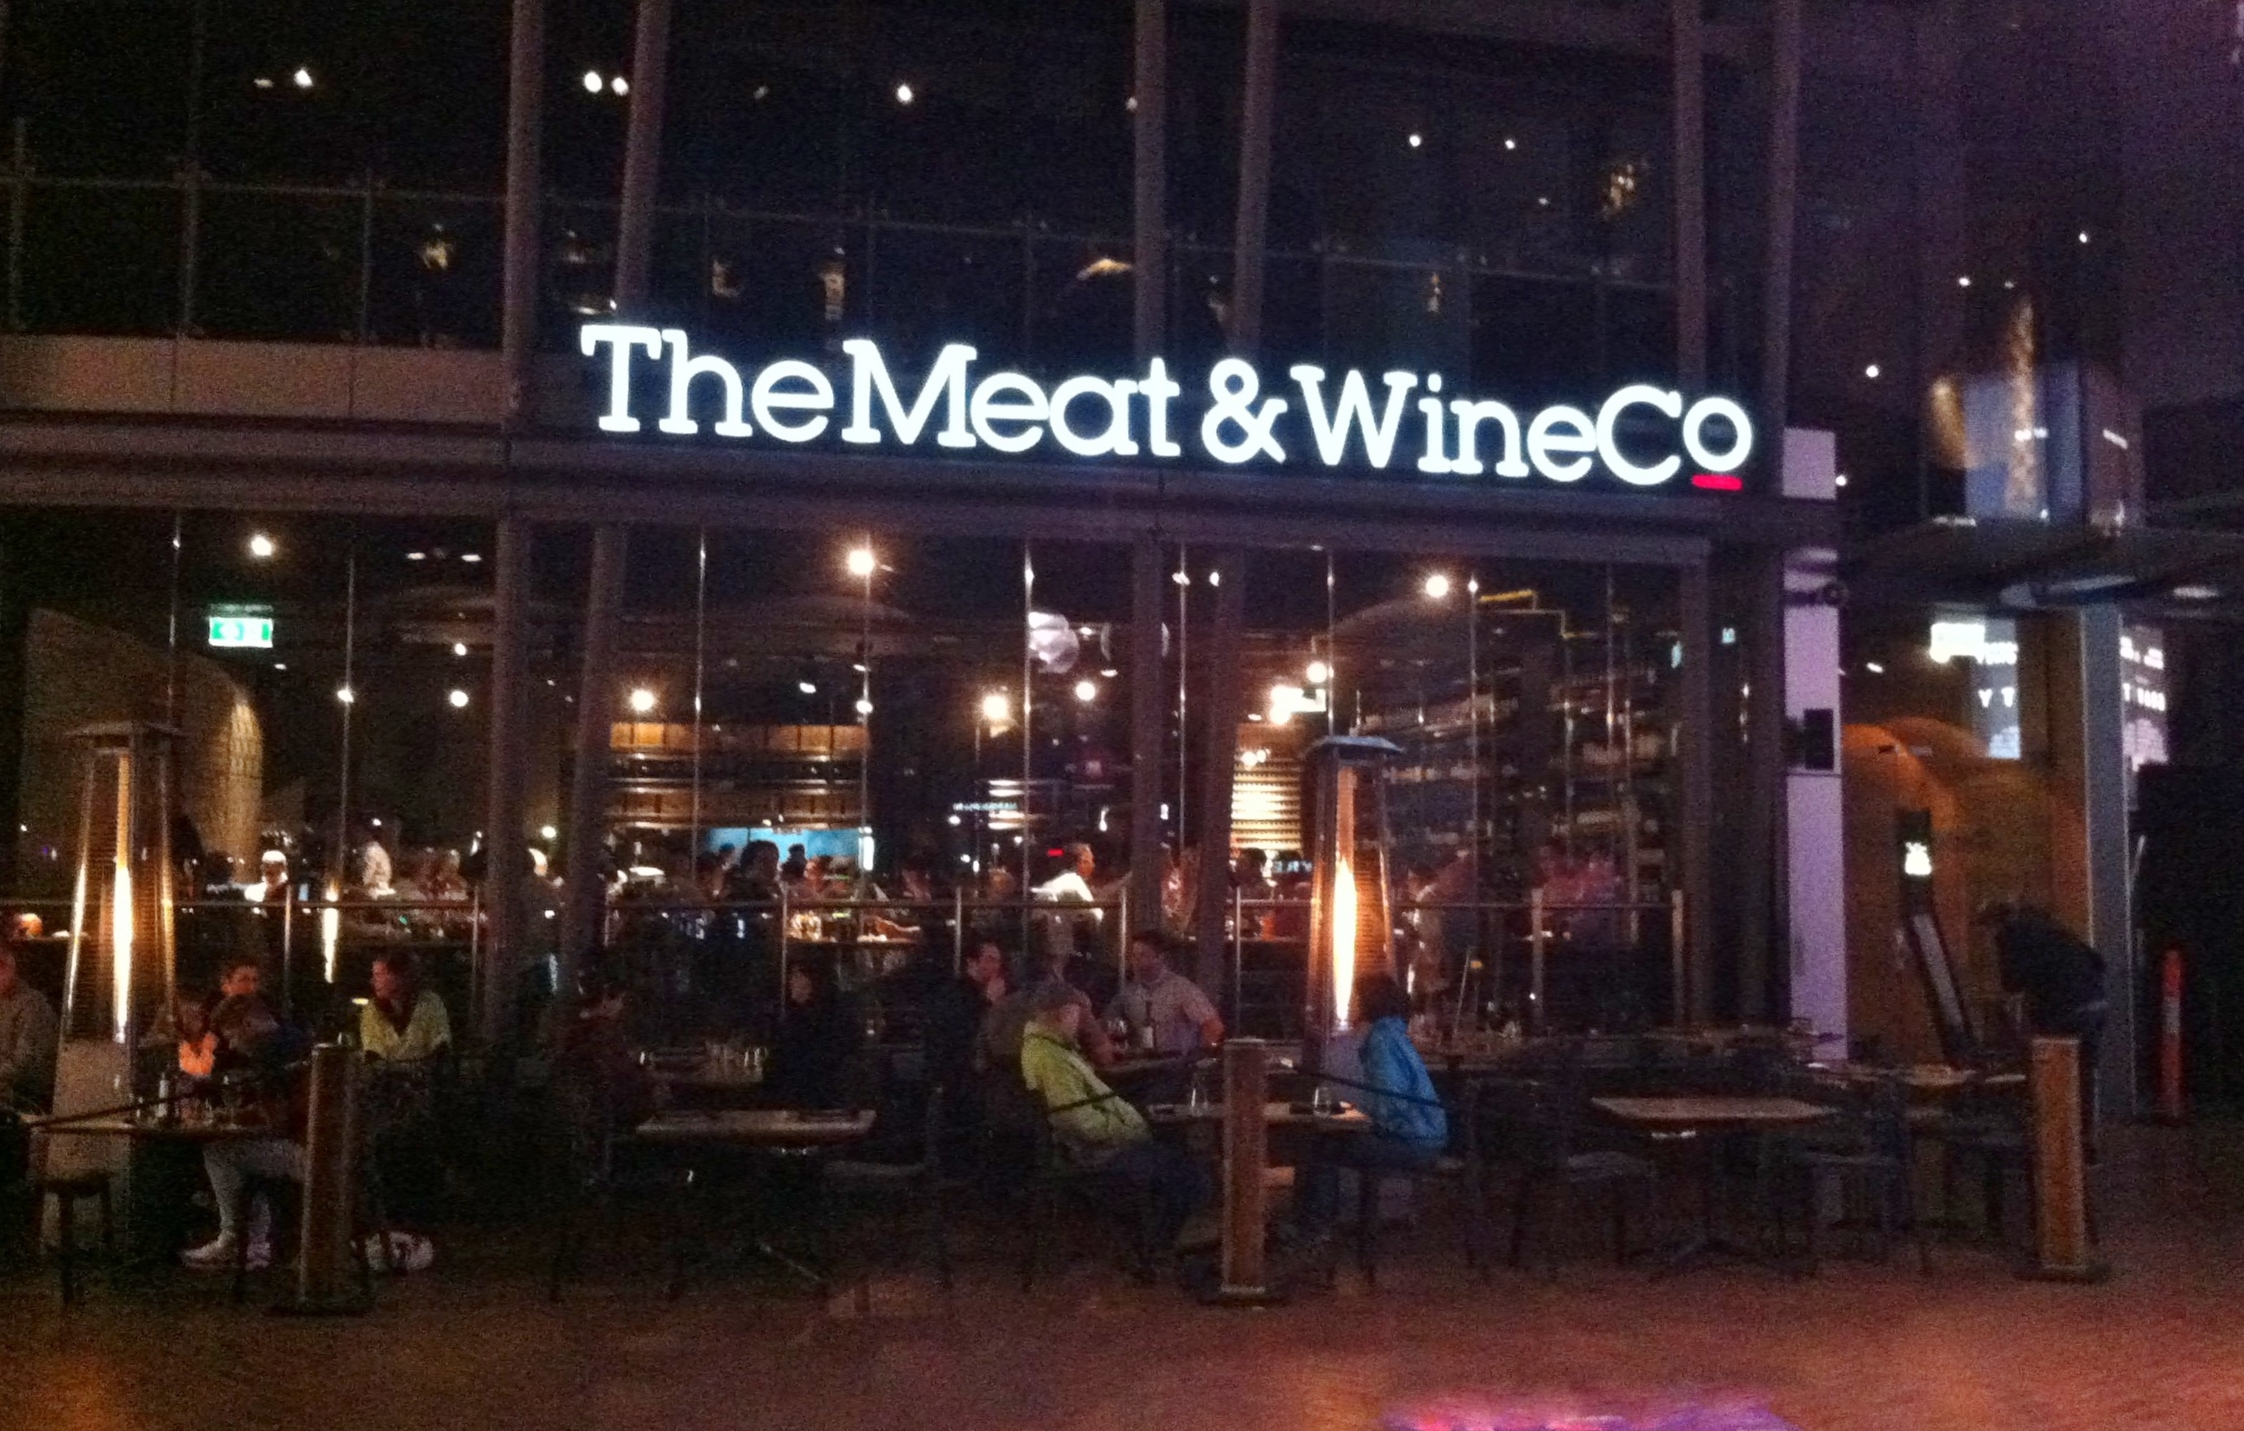 The Meat Wine Co